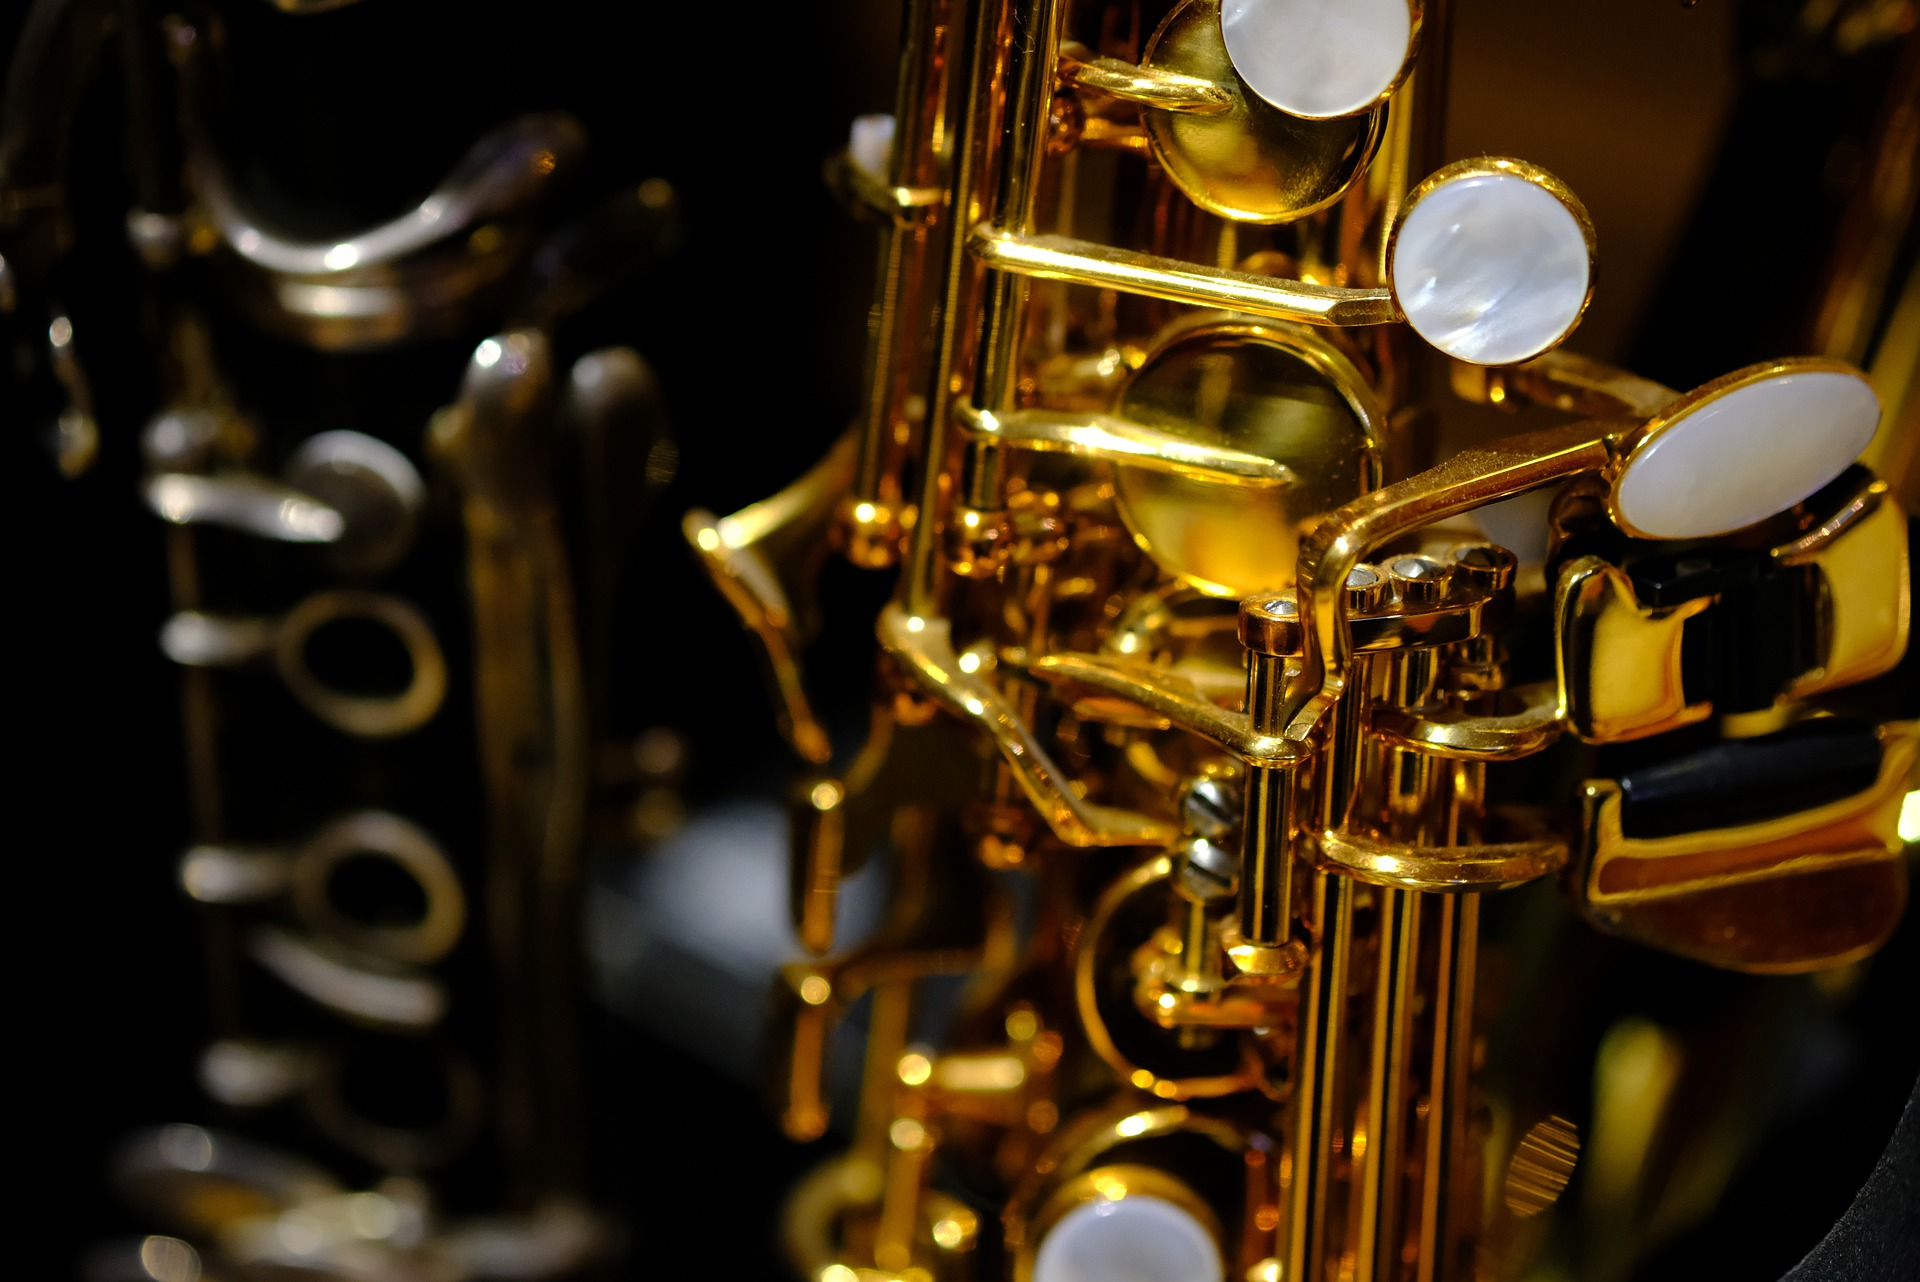 5 Memorable Multiphonics Fingerings for the Saxophone